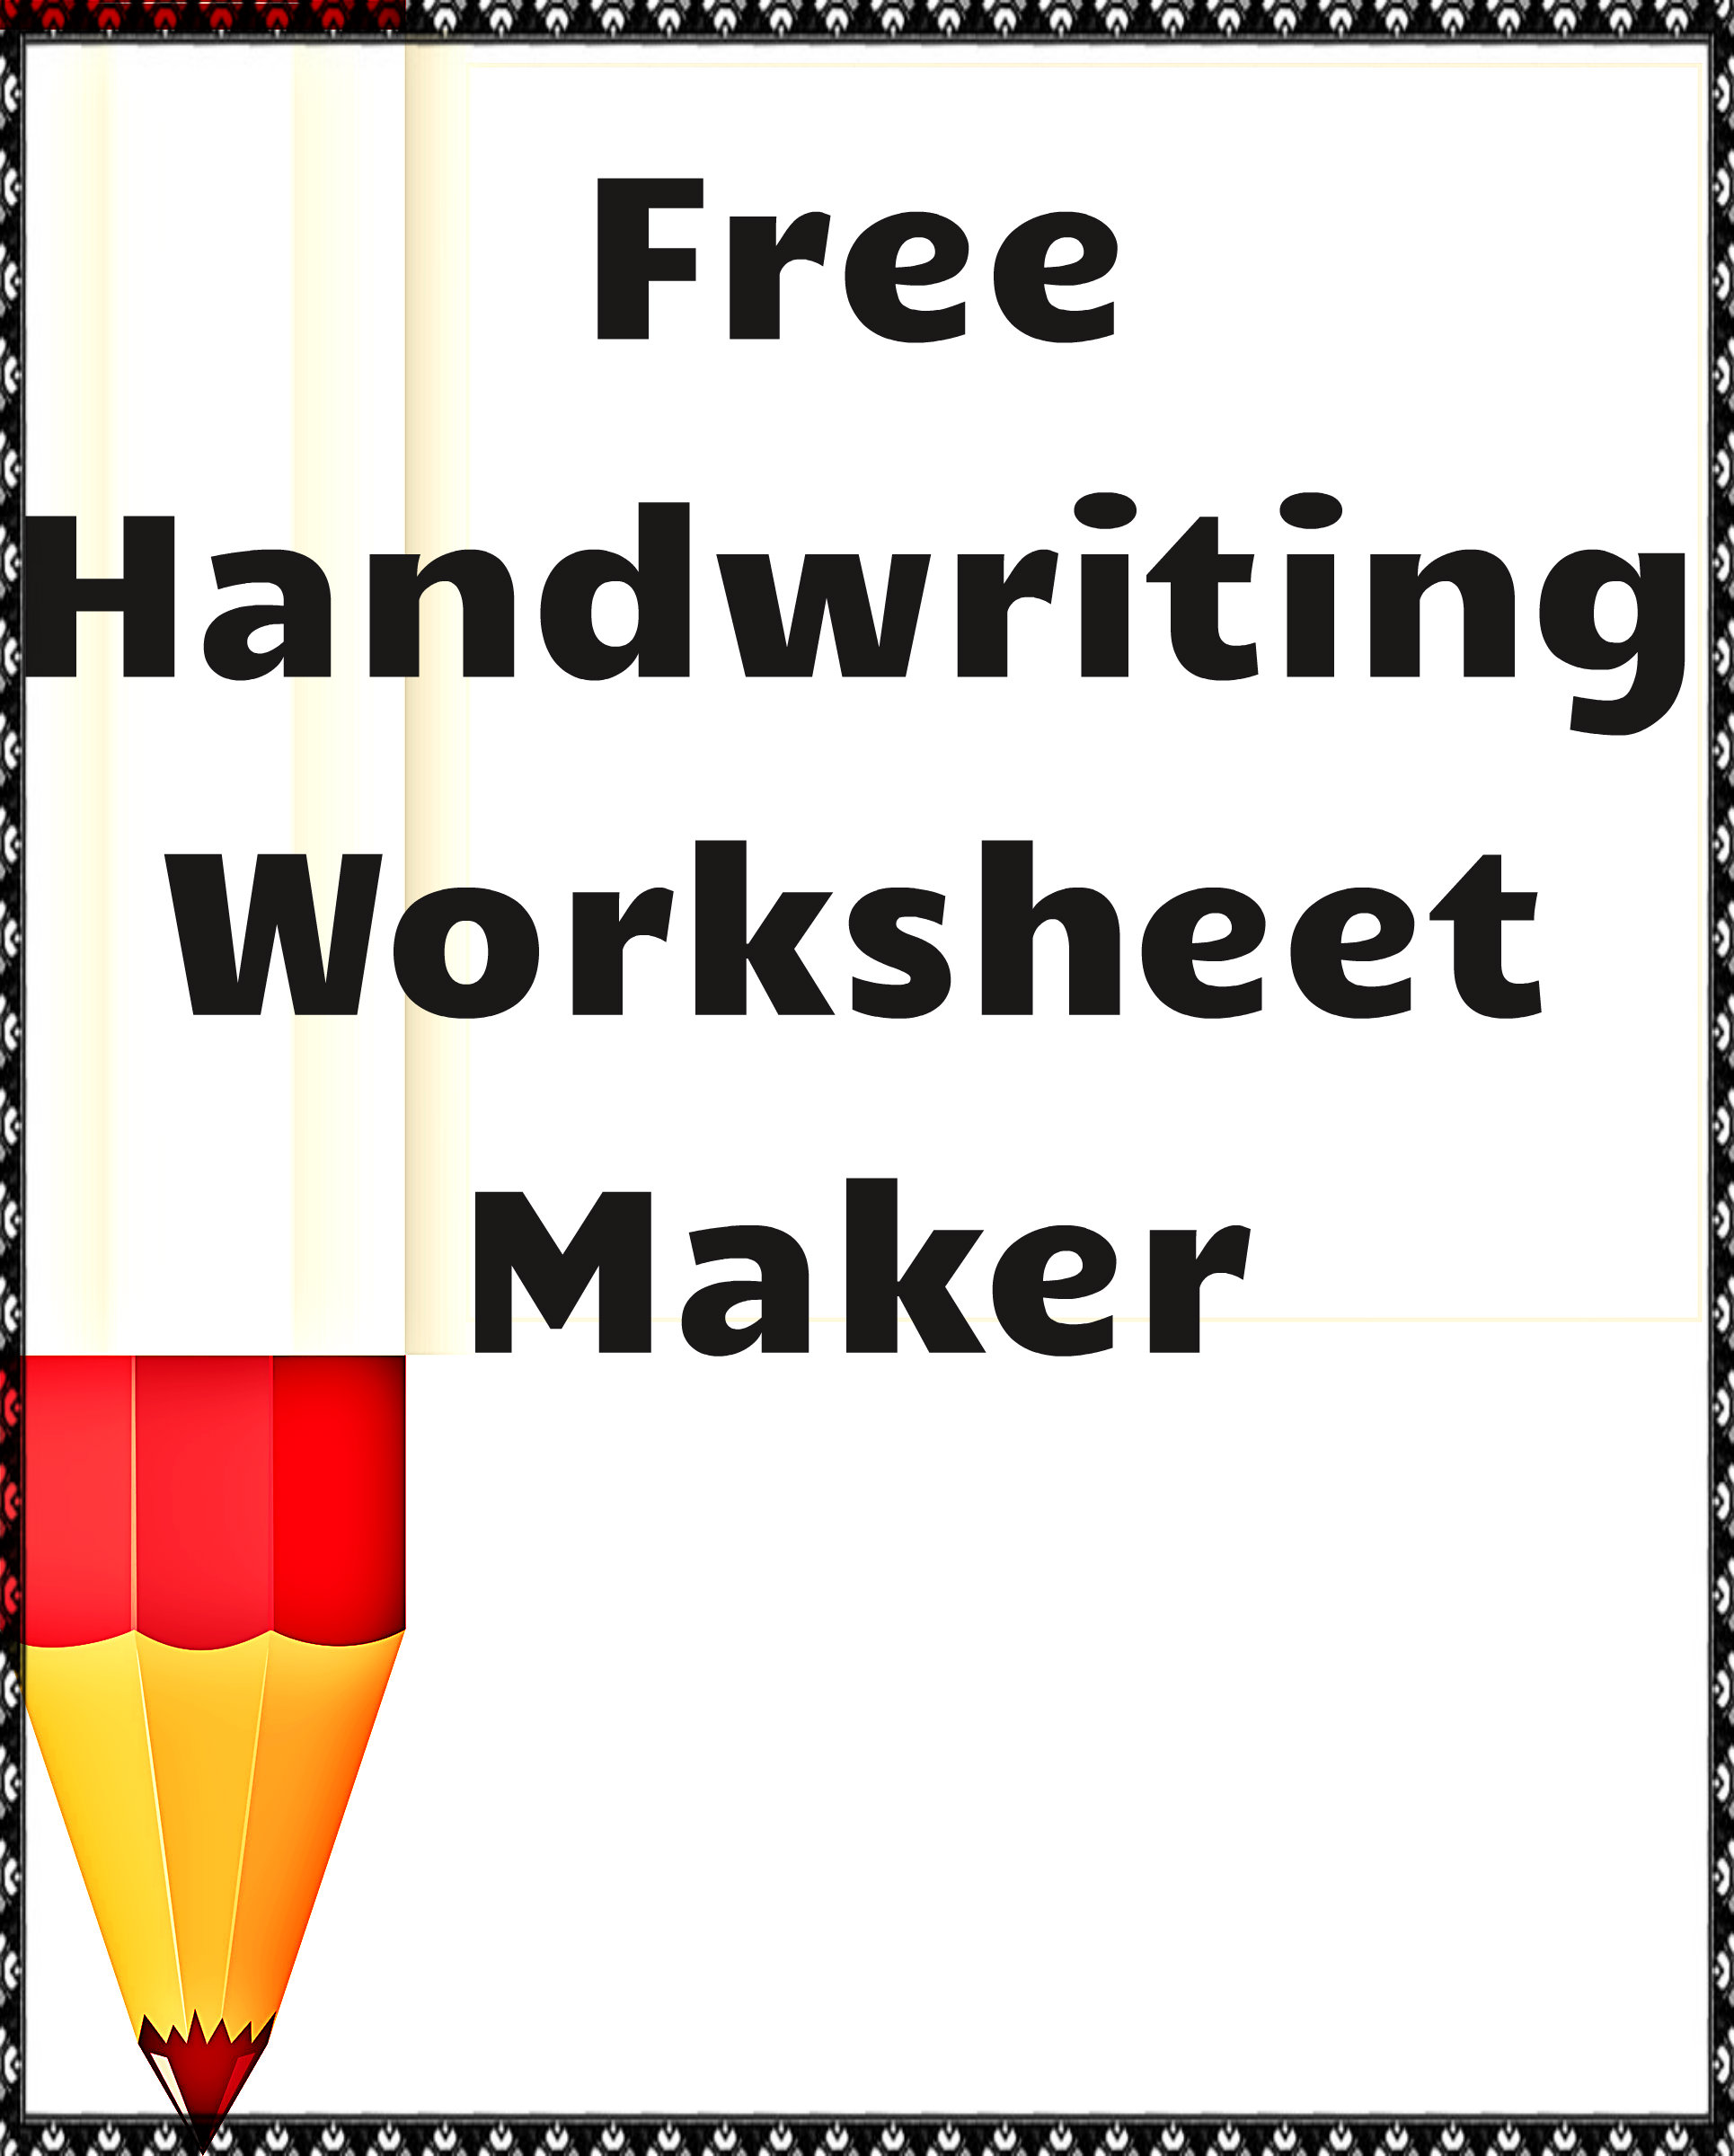 Match-up Worksheet Maker